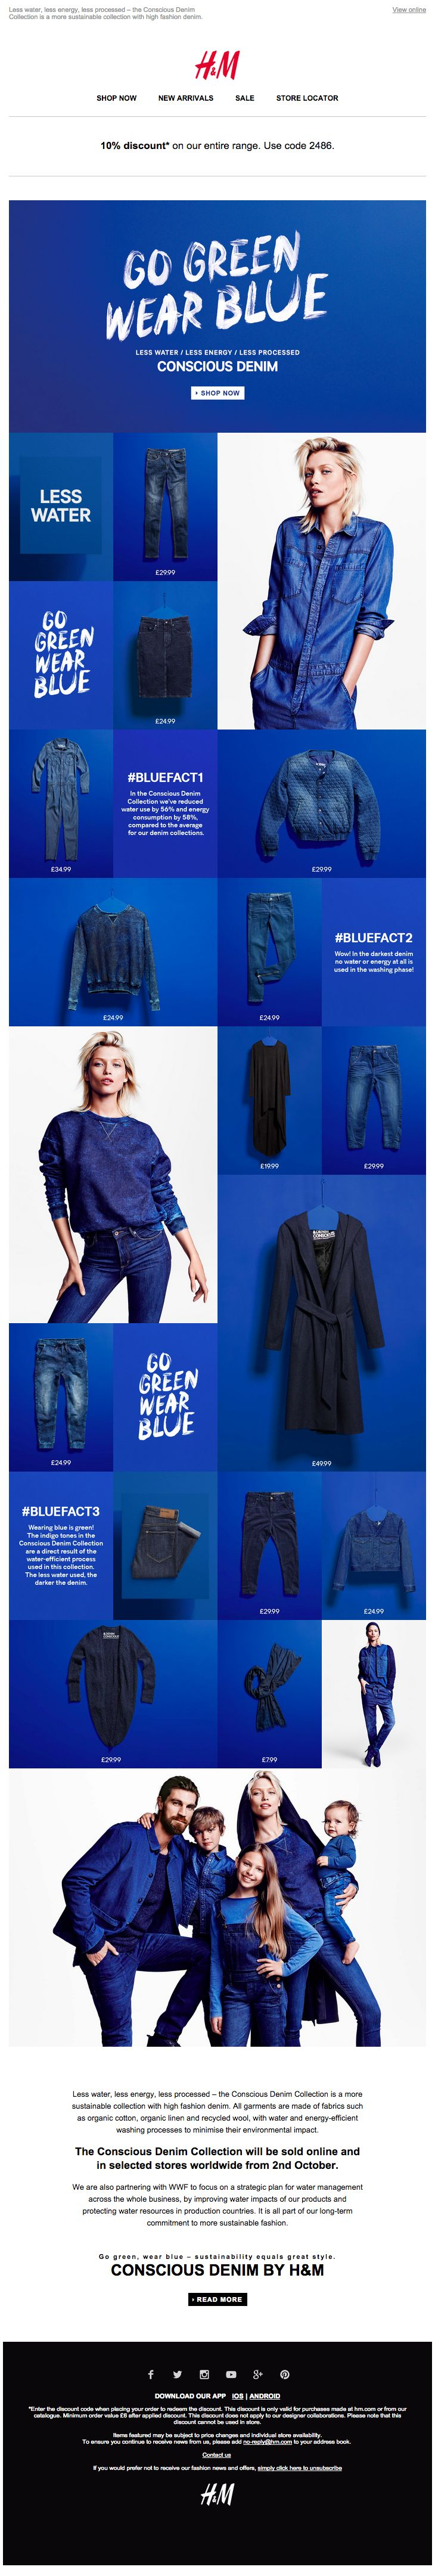 Attention-grabbing email from H&M - Go Green Wear Blue 02.10.2014. Eye-catching use of colour and lovely, simple use of GIF but still looks awful on mobile!